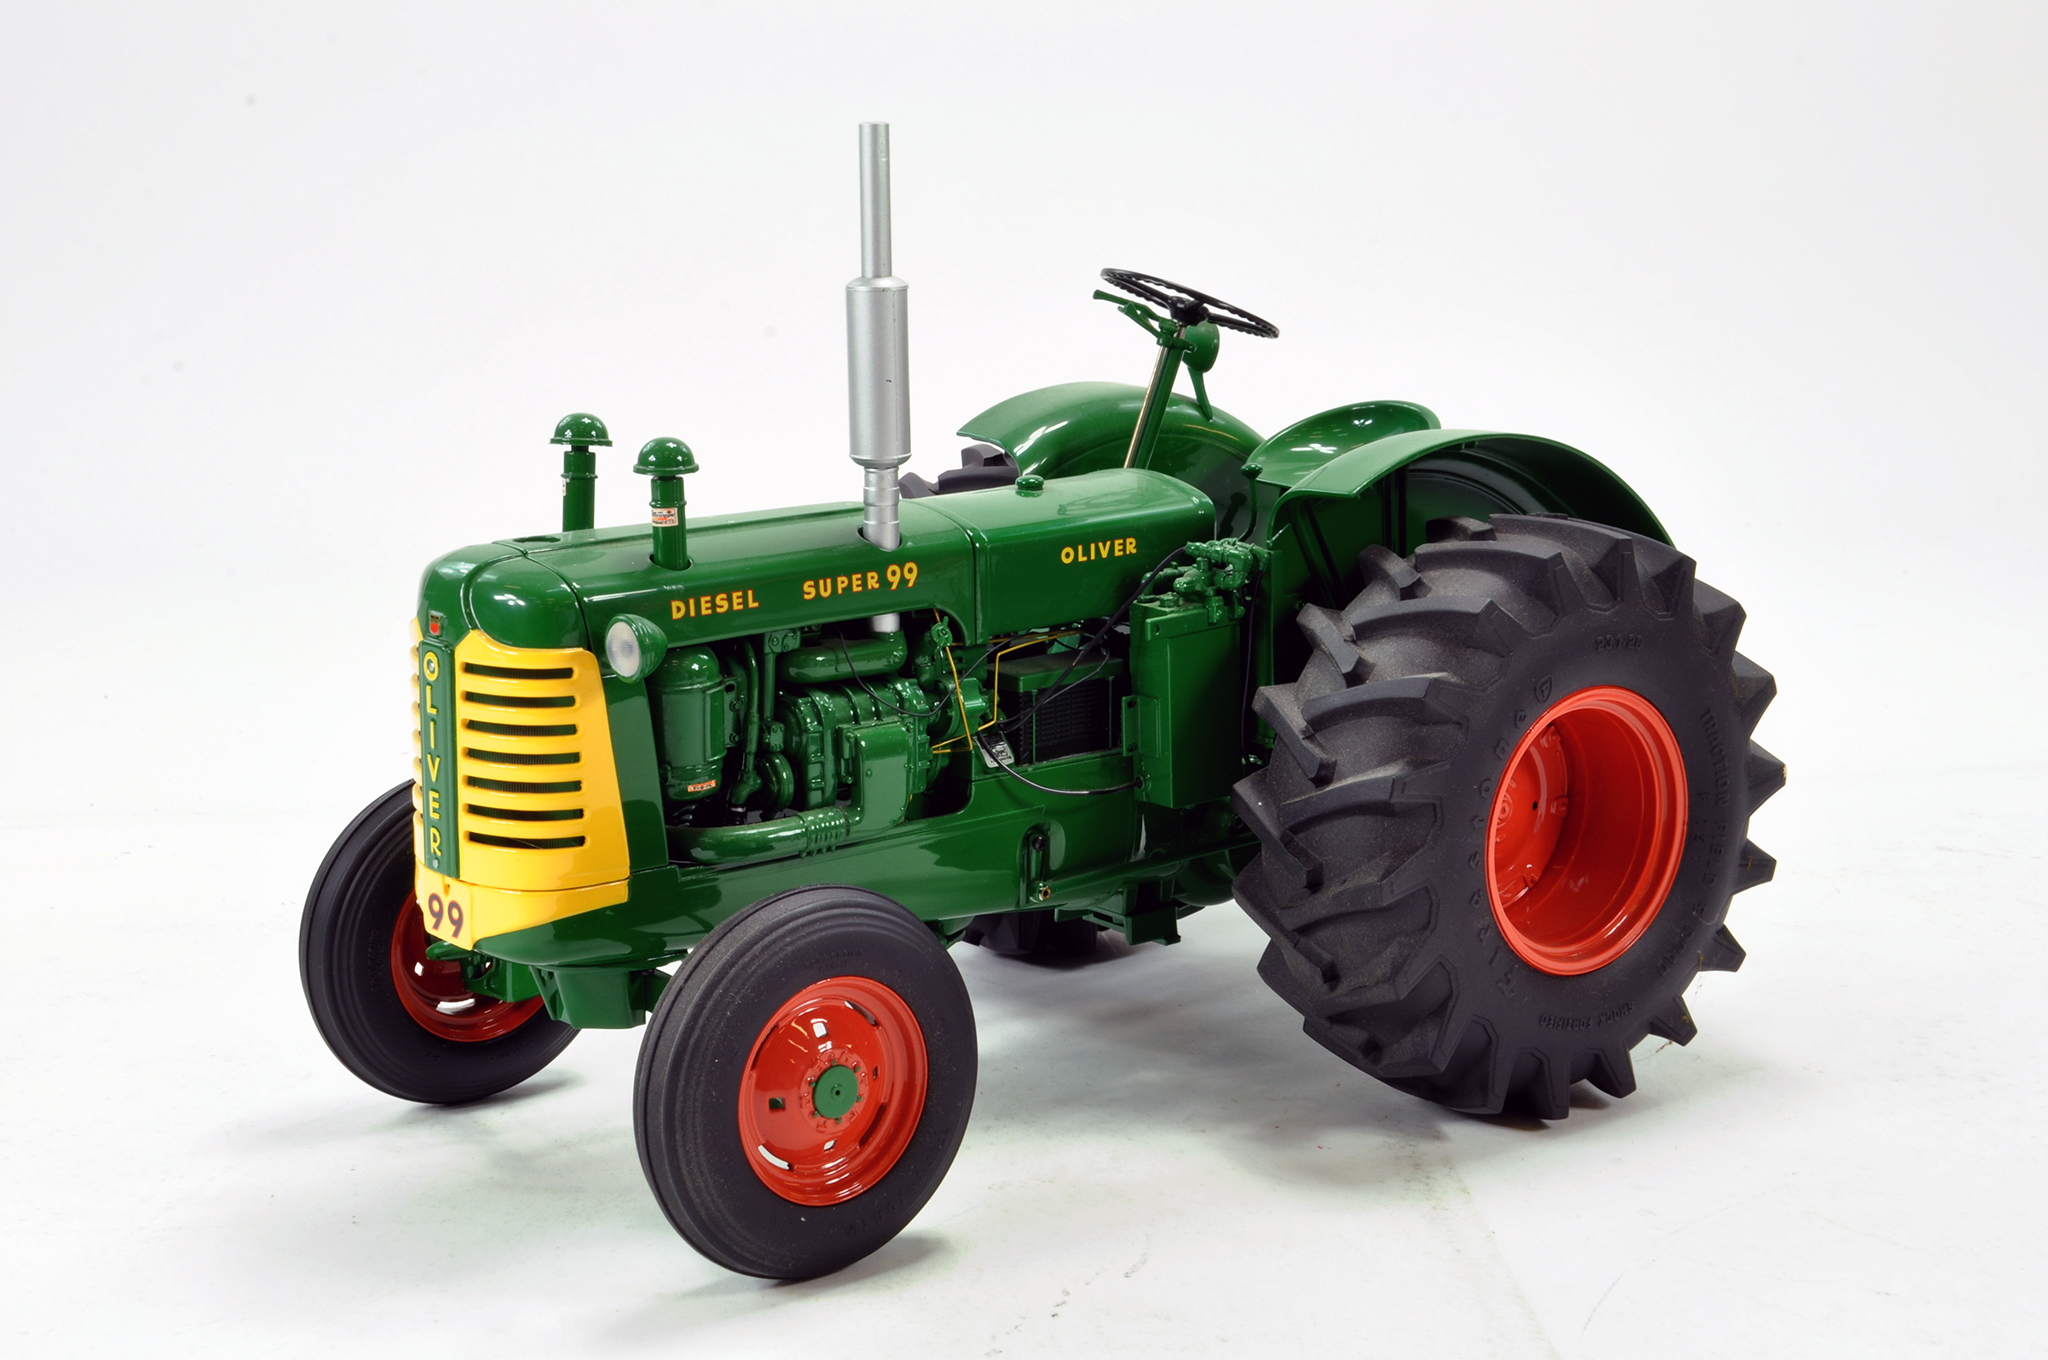 Lot 546 - Franklin Mint 1/12 Precision Issue Oliver Super 99 Diesel Tractor. Excellent.